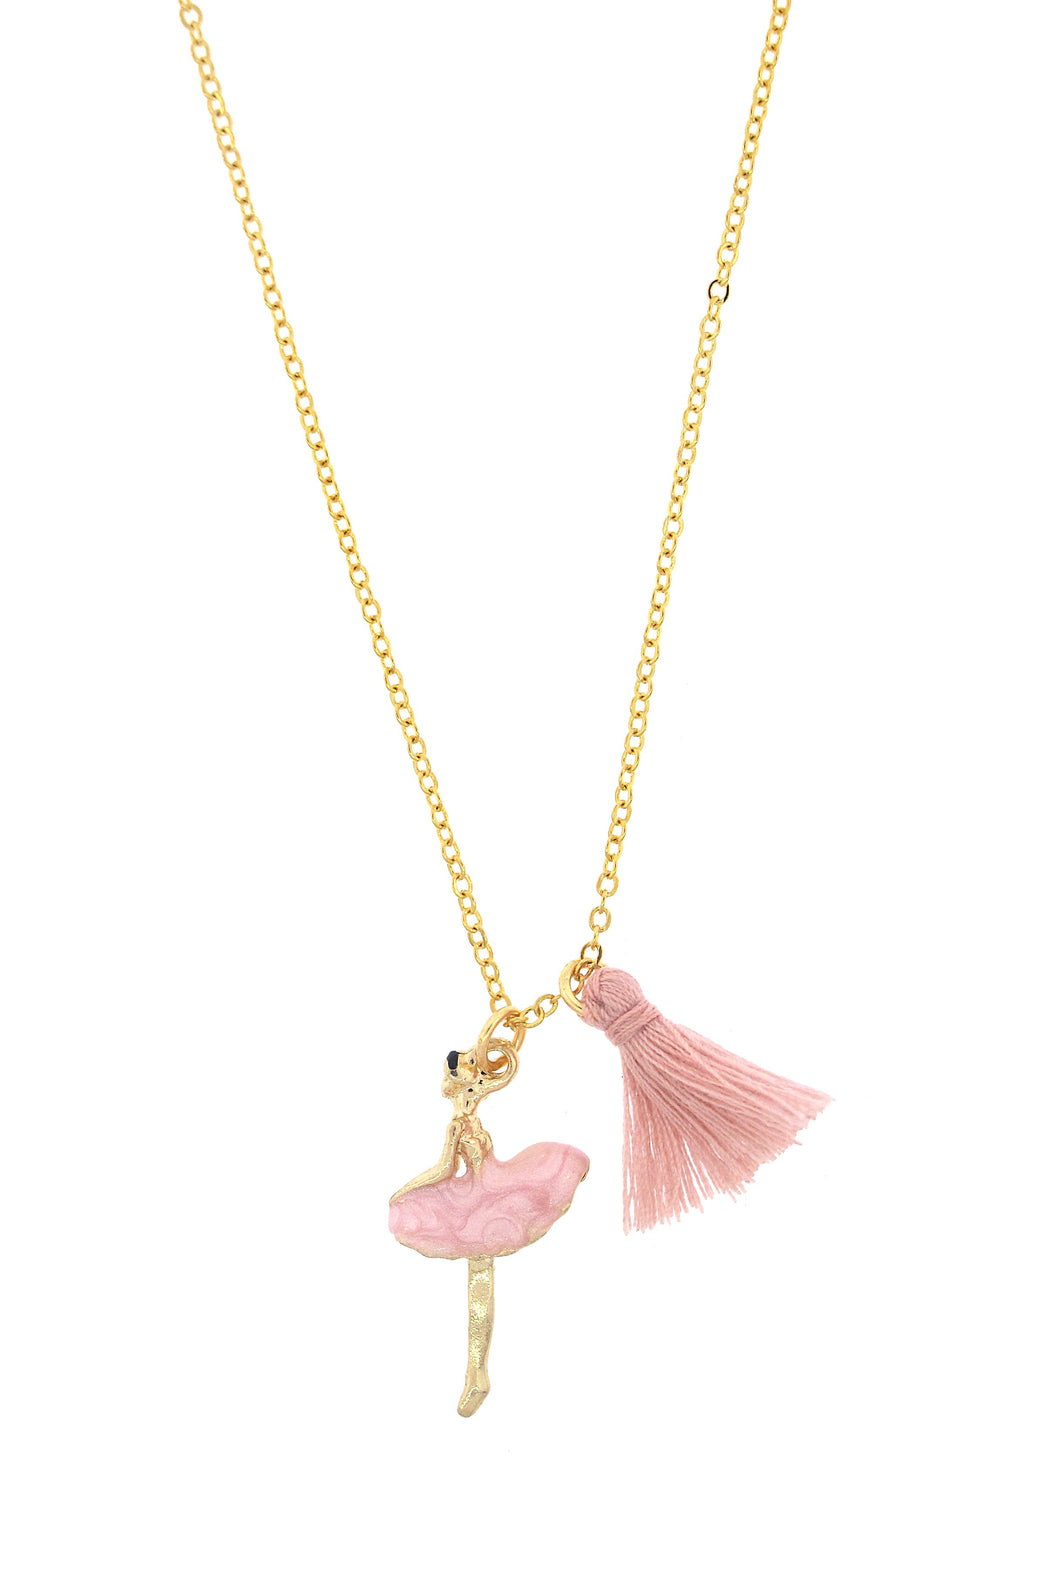 Ballerina Fun in the Sun Necklace